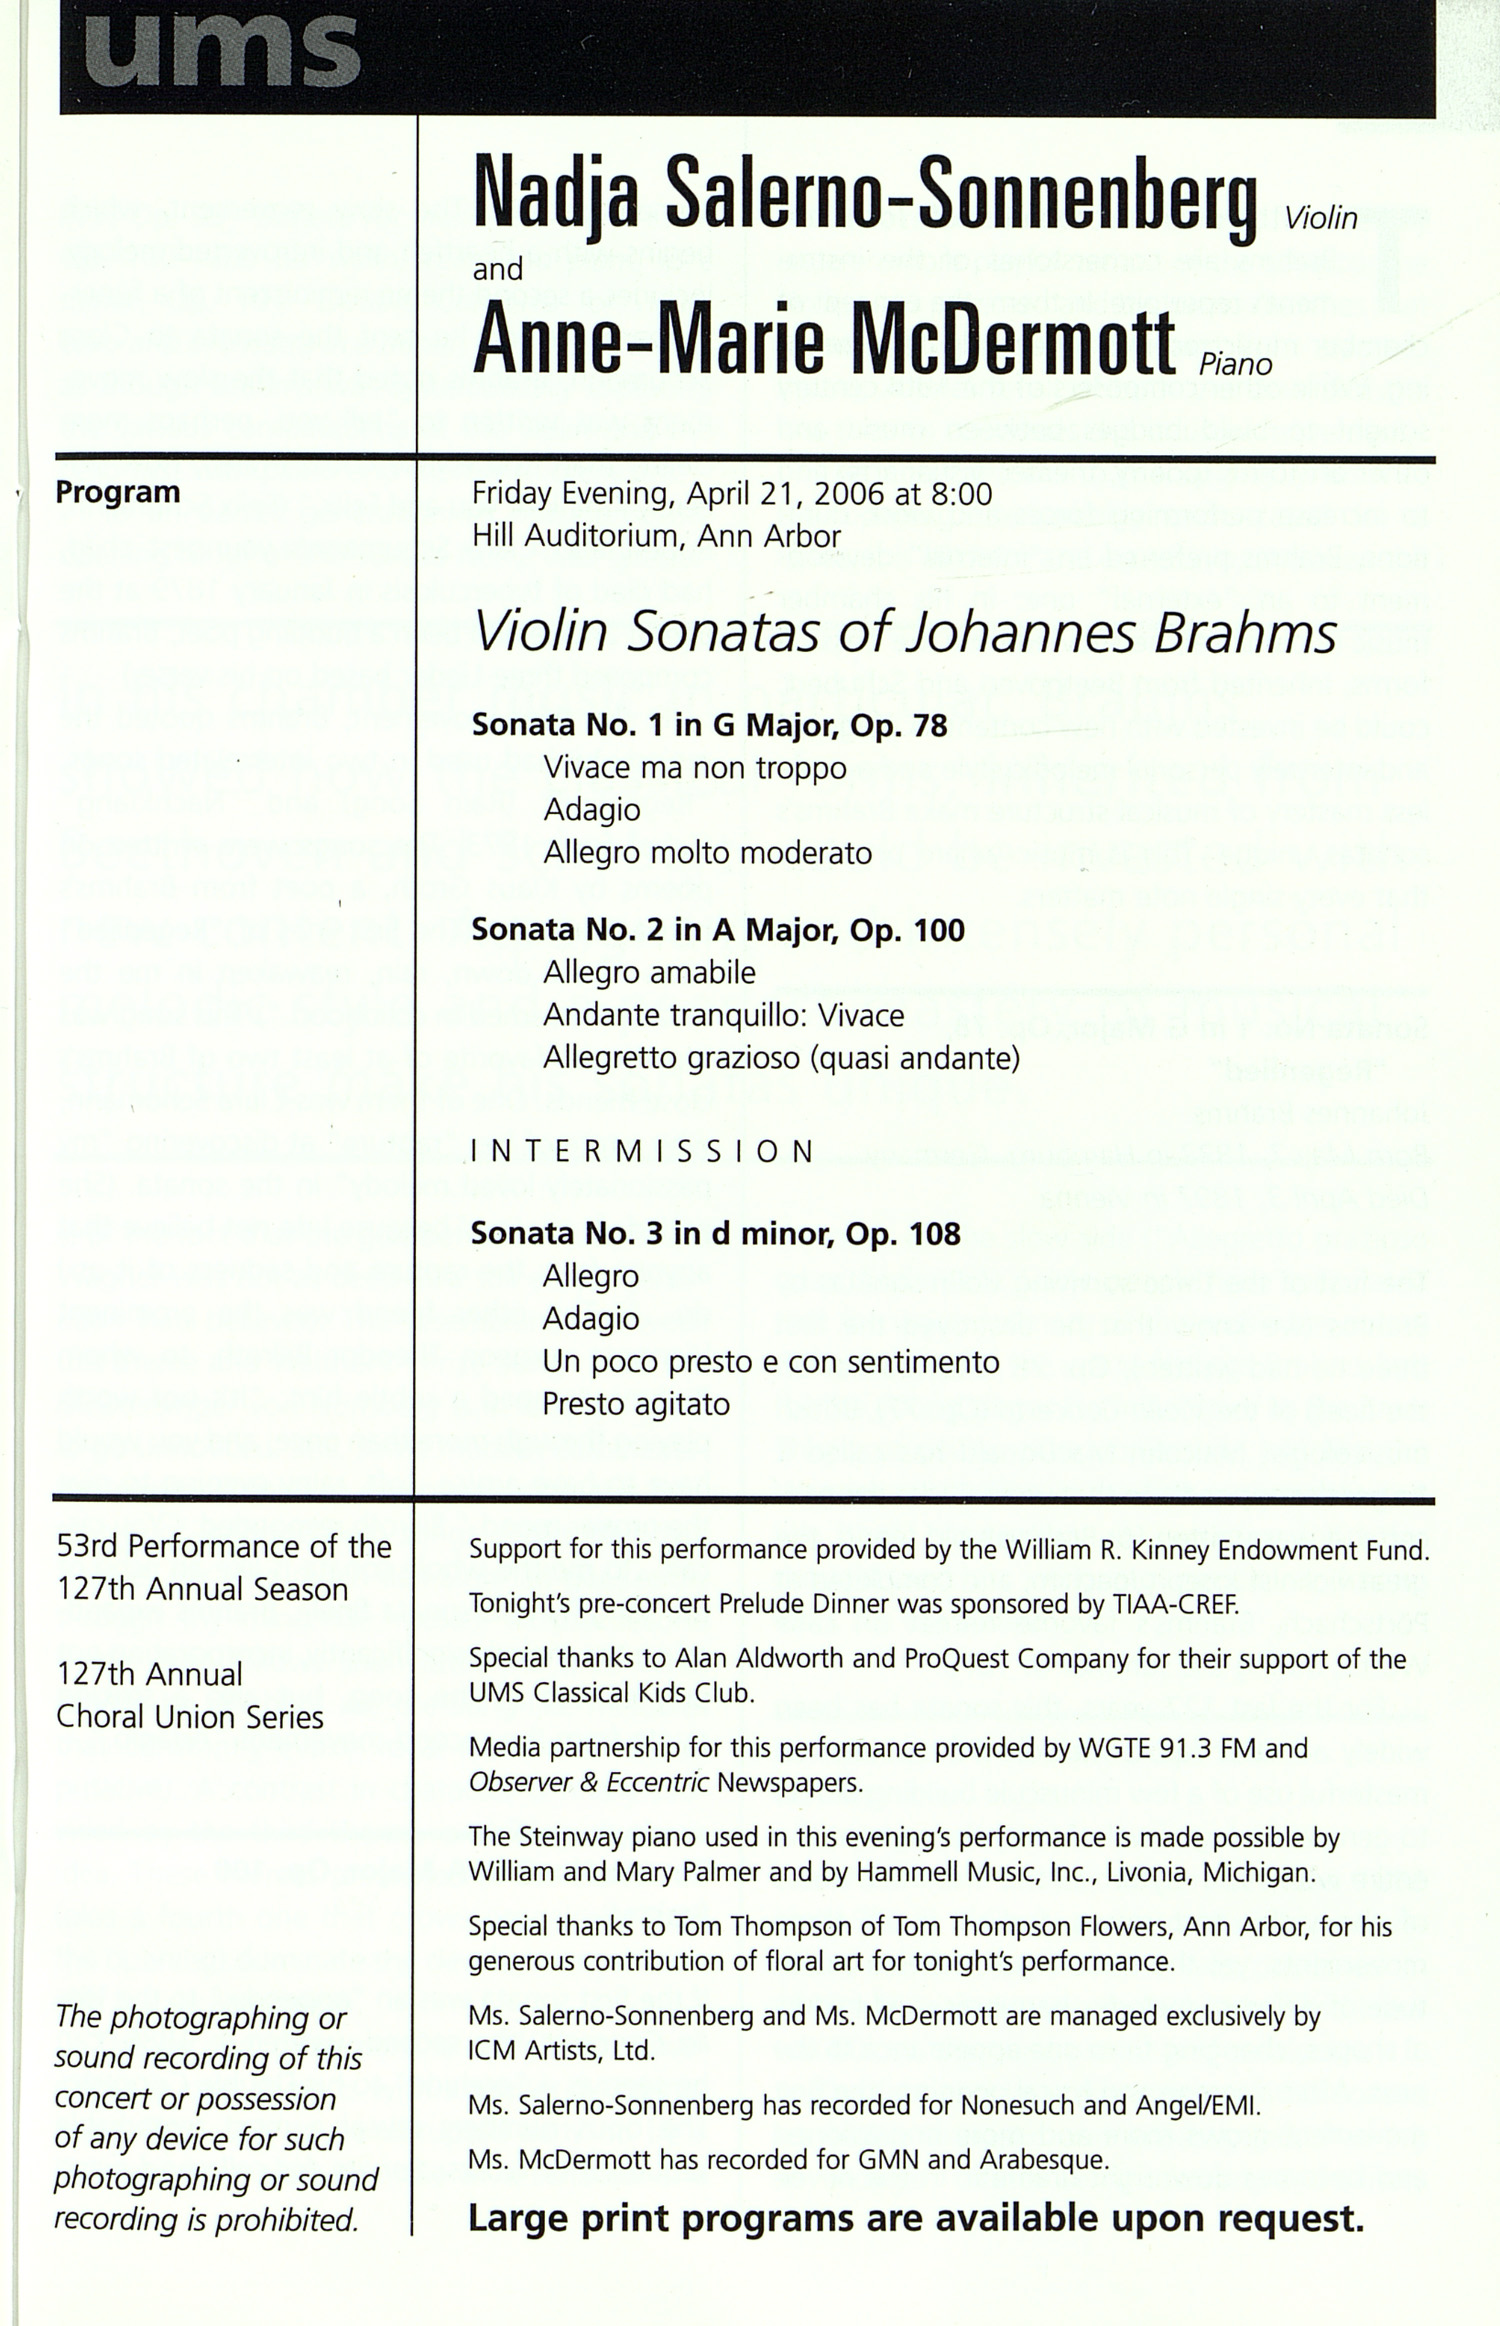 UMS Concert Program, Tuesday Apr. 18 To 22: University Musical Society: Winter 2006 - Tuesday Apr. 18 To 22 --  image